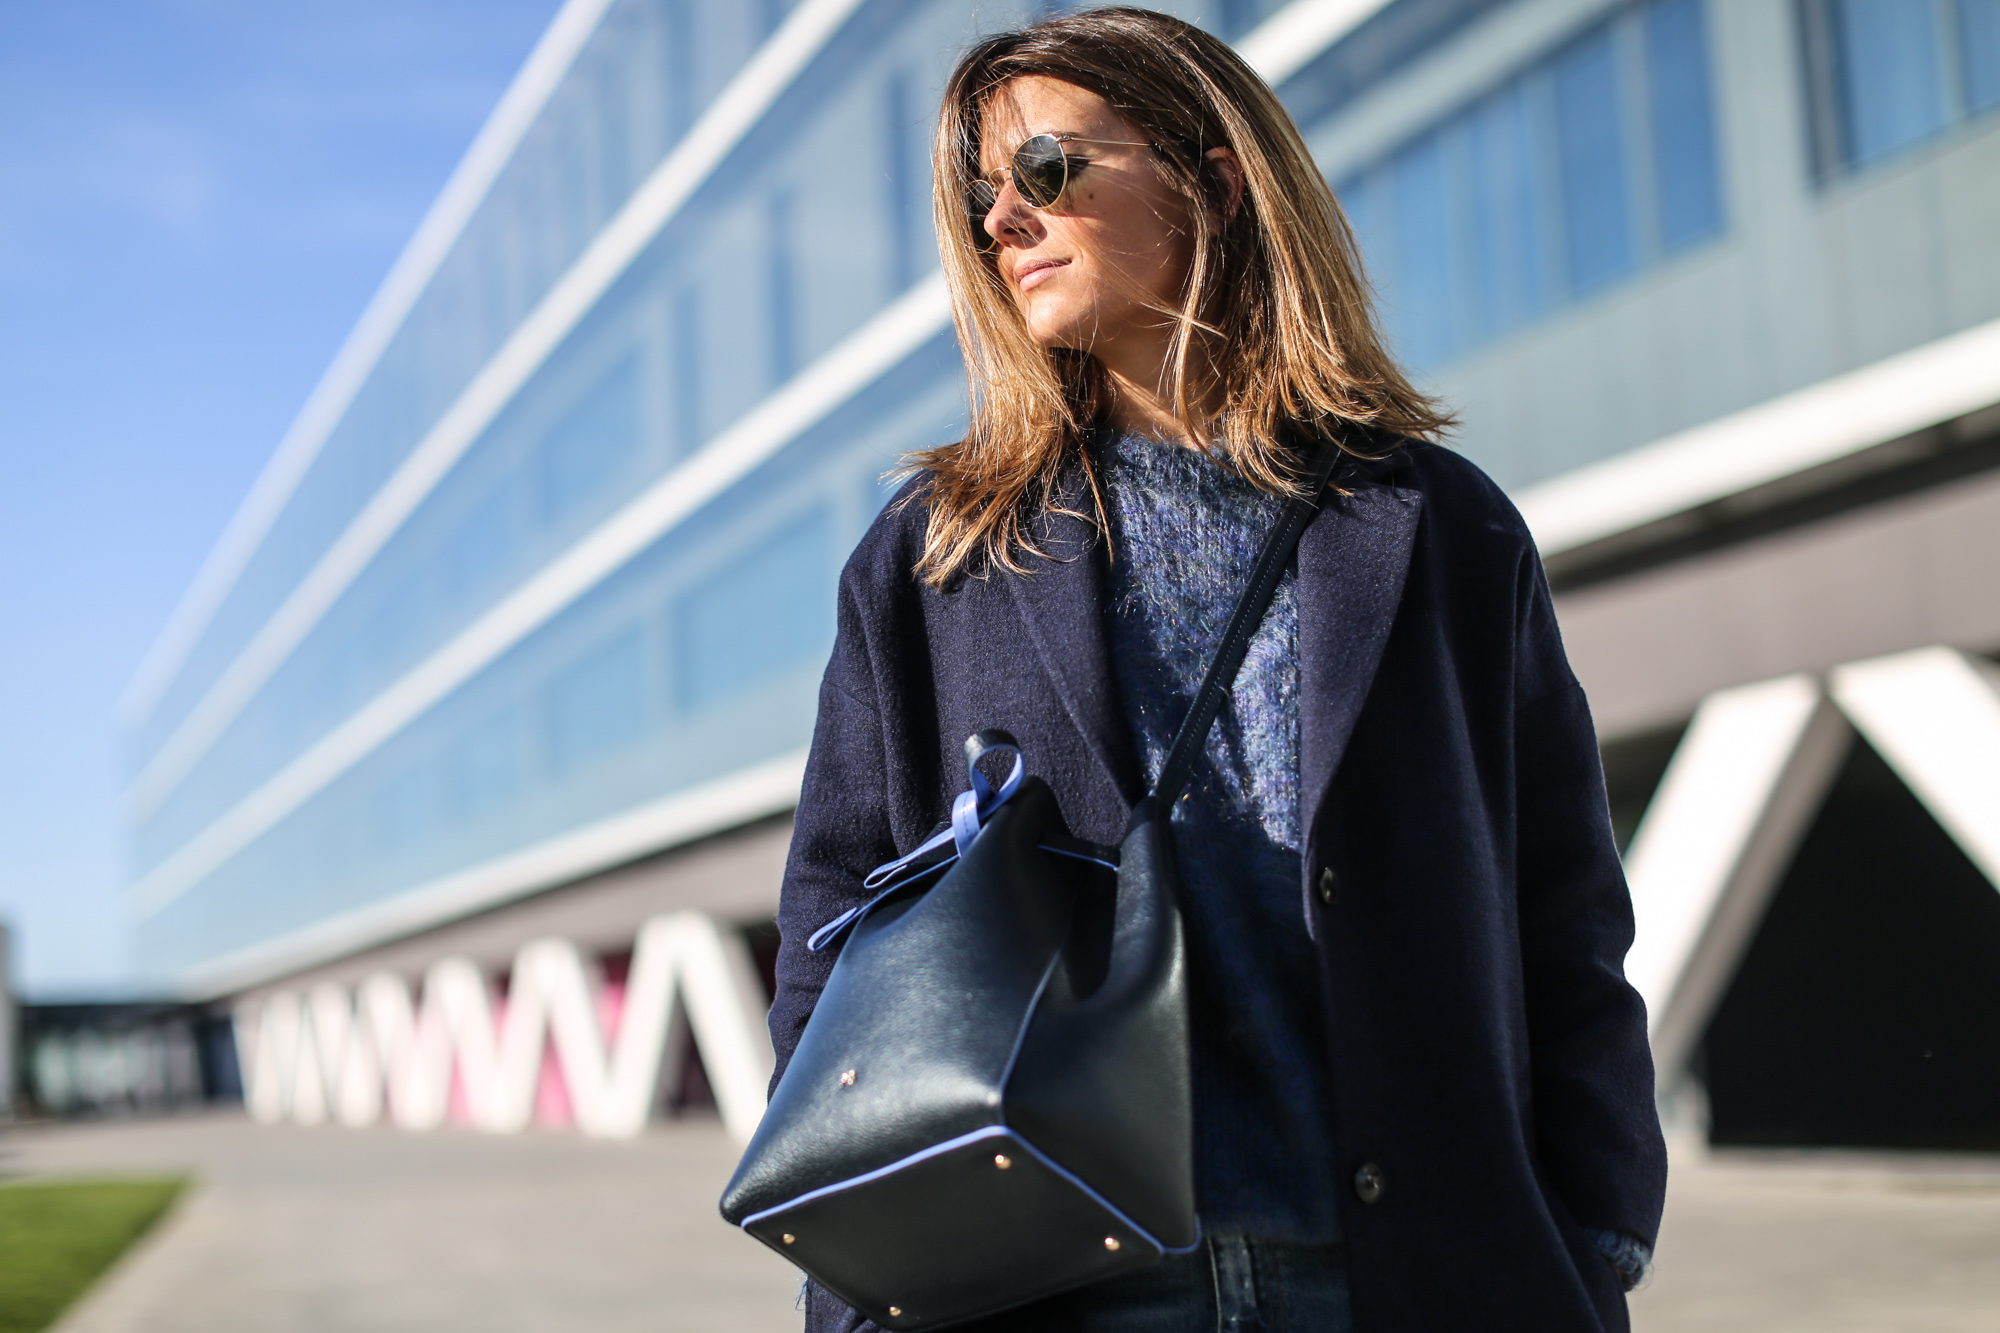 Clochet_streetstyle_masscob_navy_coat_trimmer_bilbao_acne_pop_jeans-11